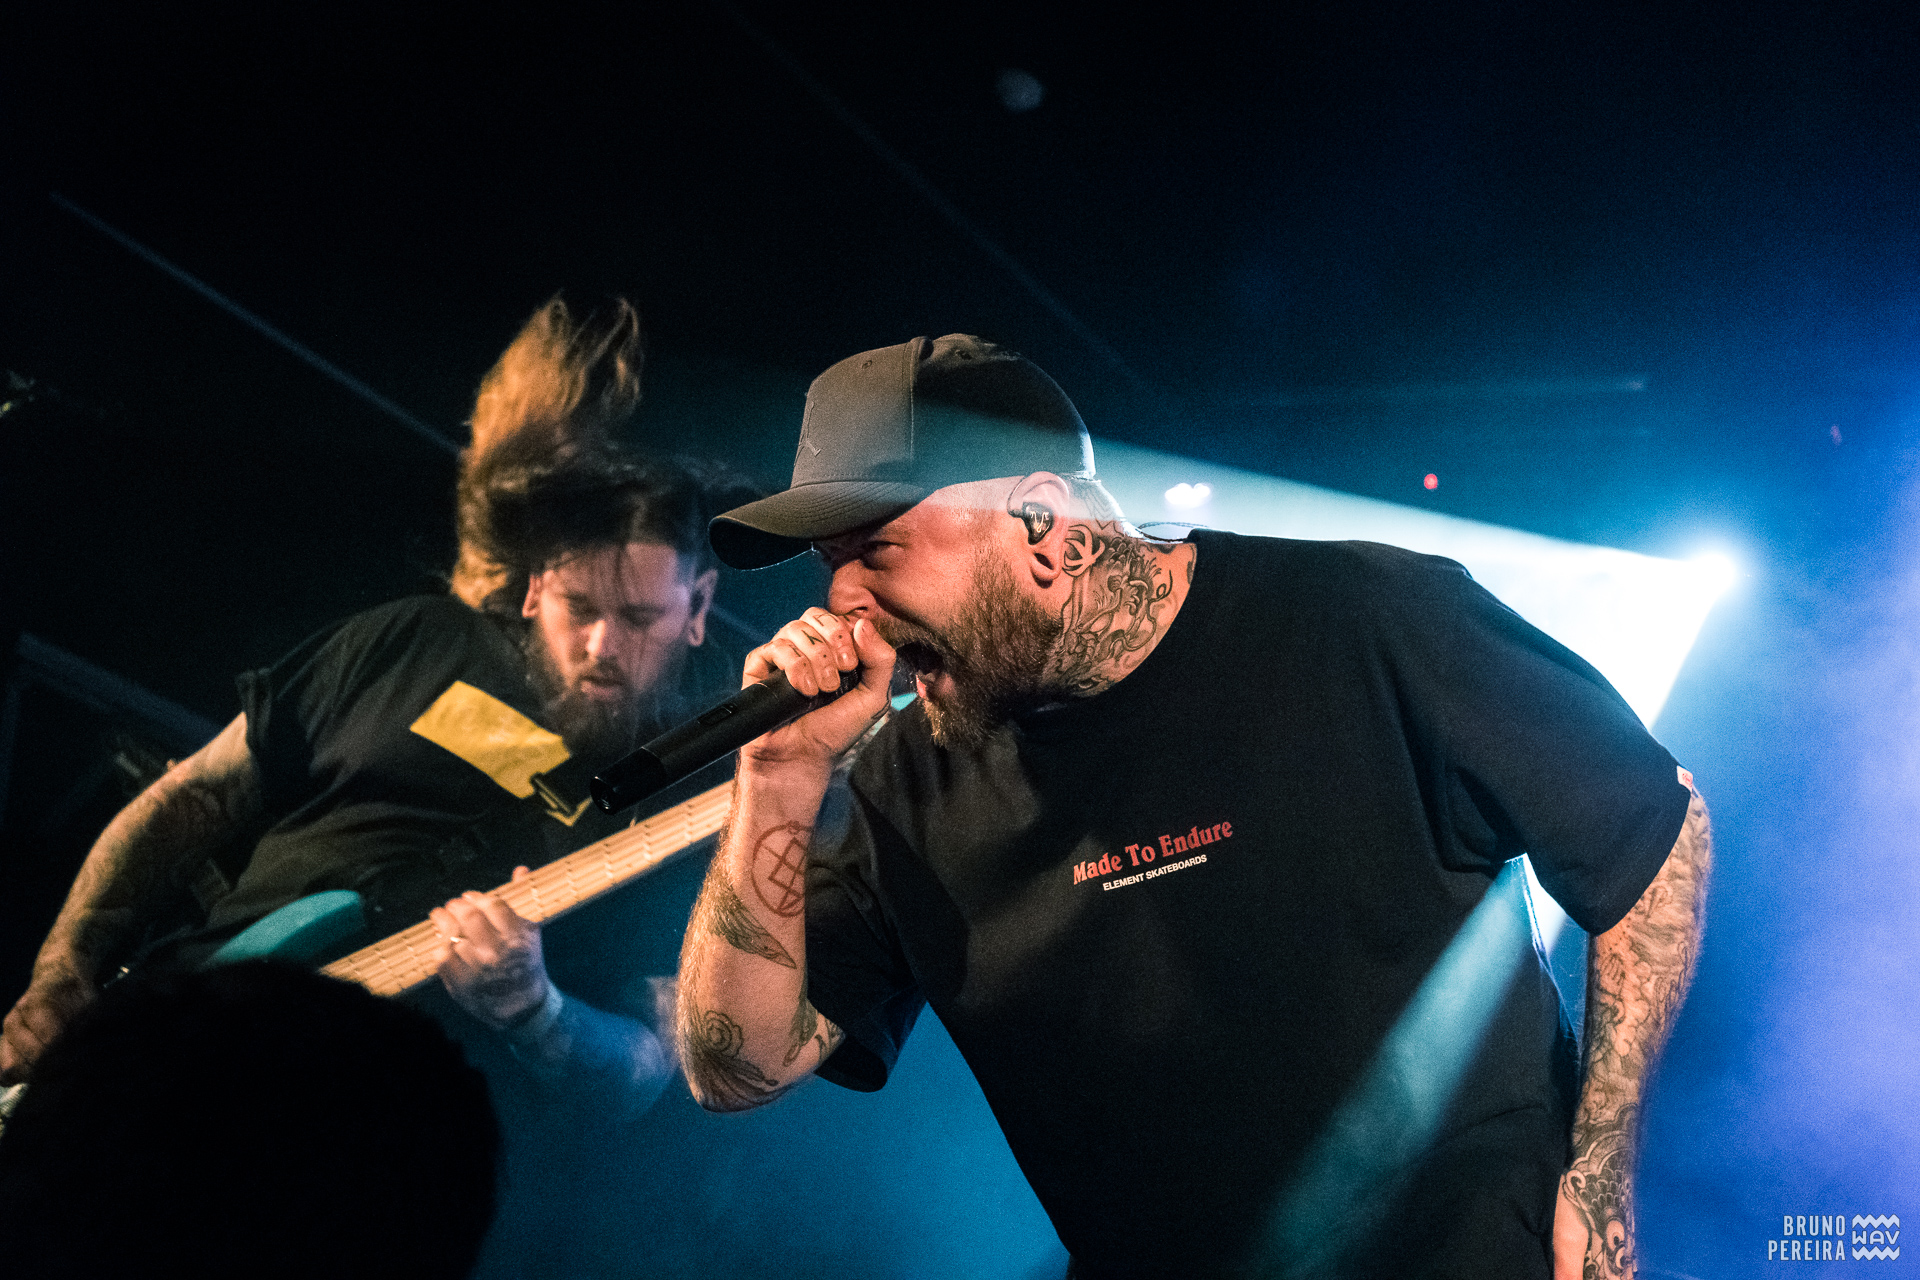 Bury Tomorrow - Hard Club, Porto [25Fev2019] Texto + Fotos